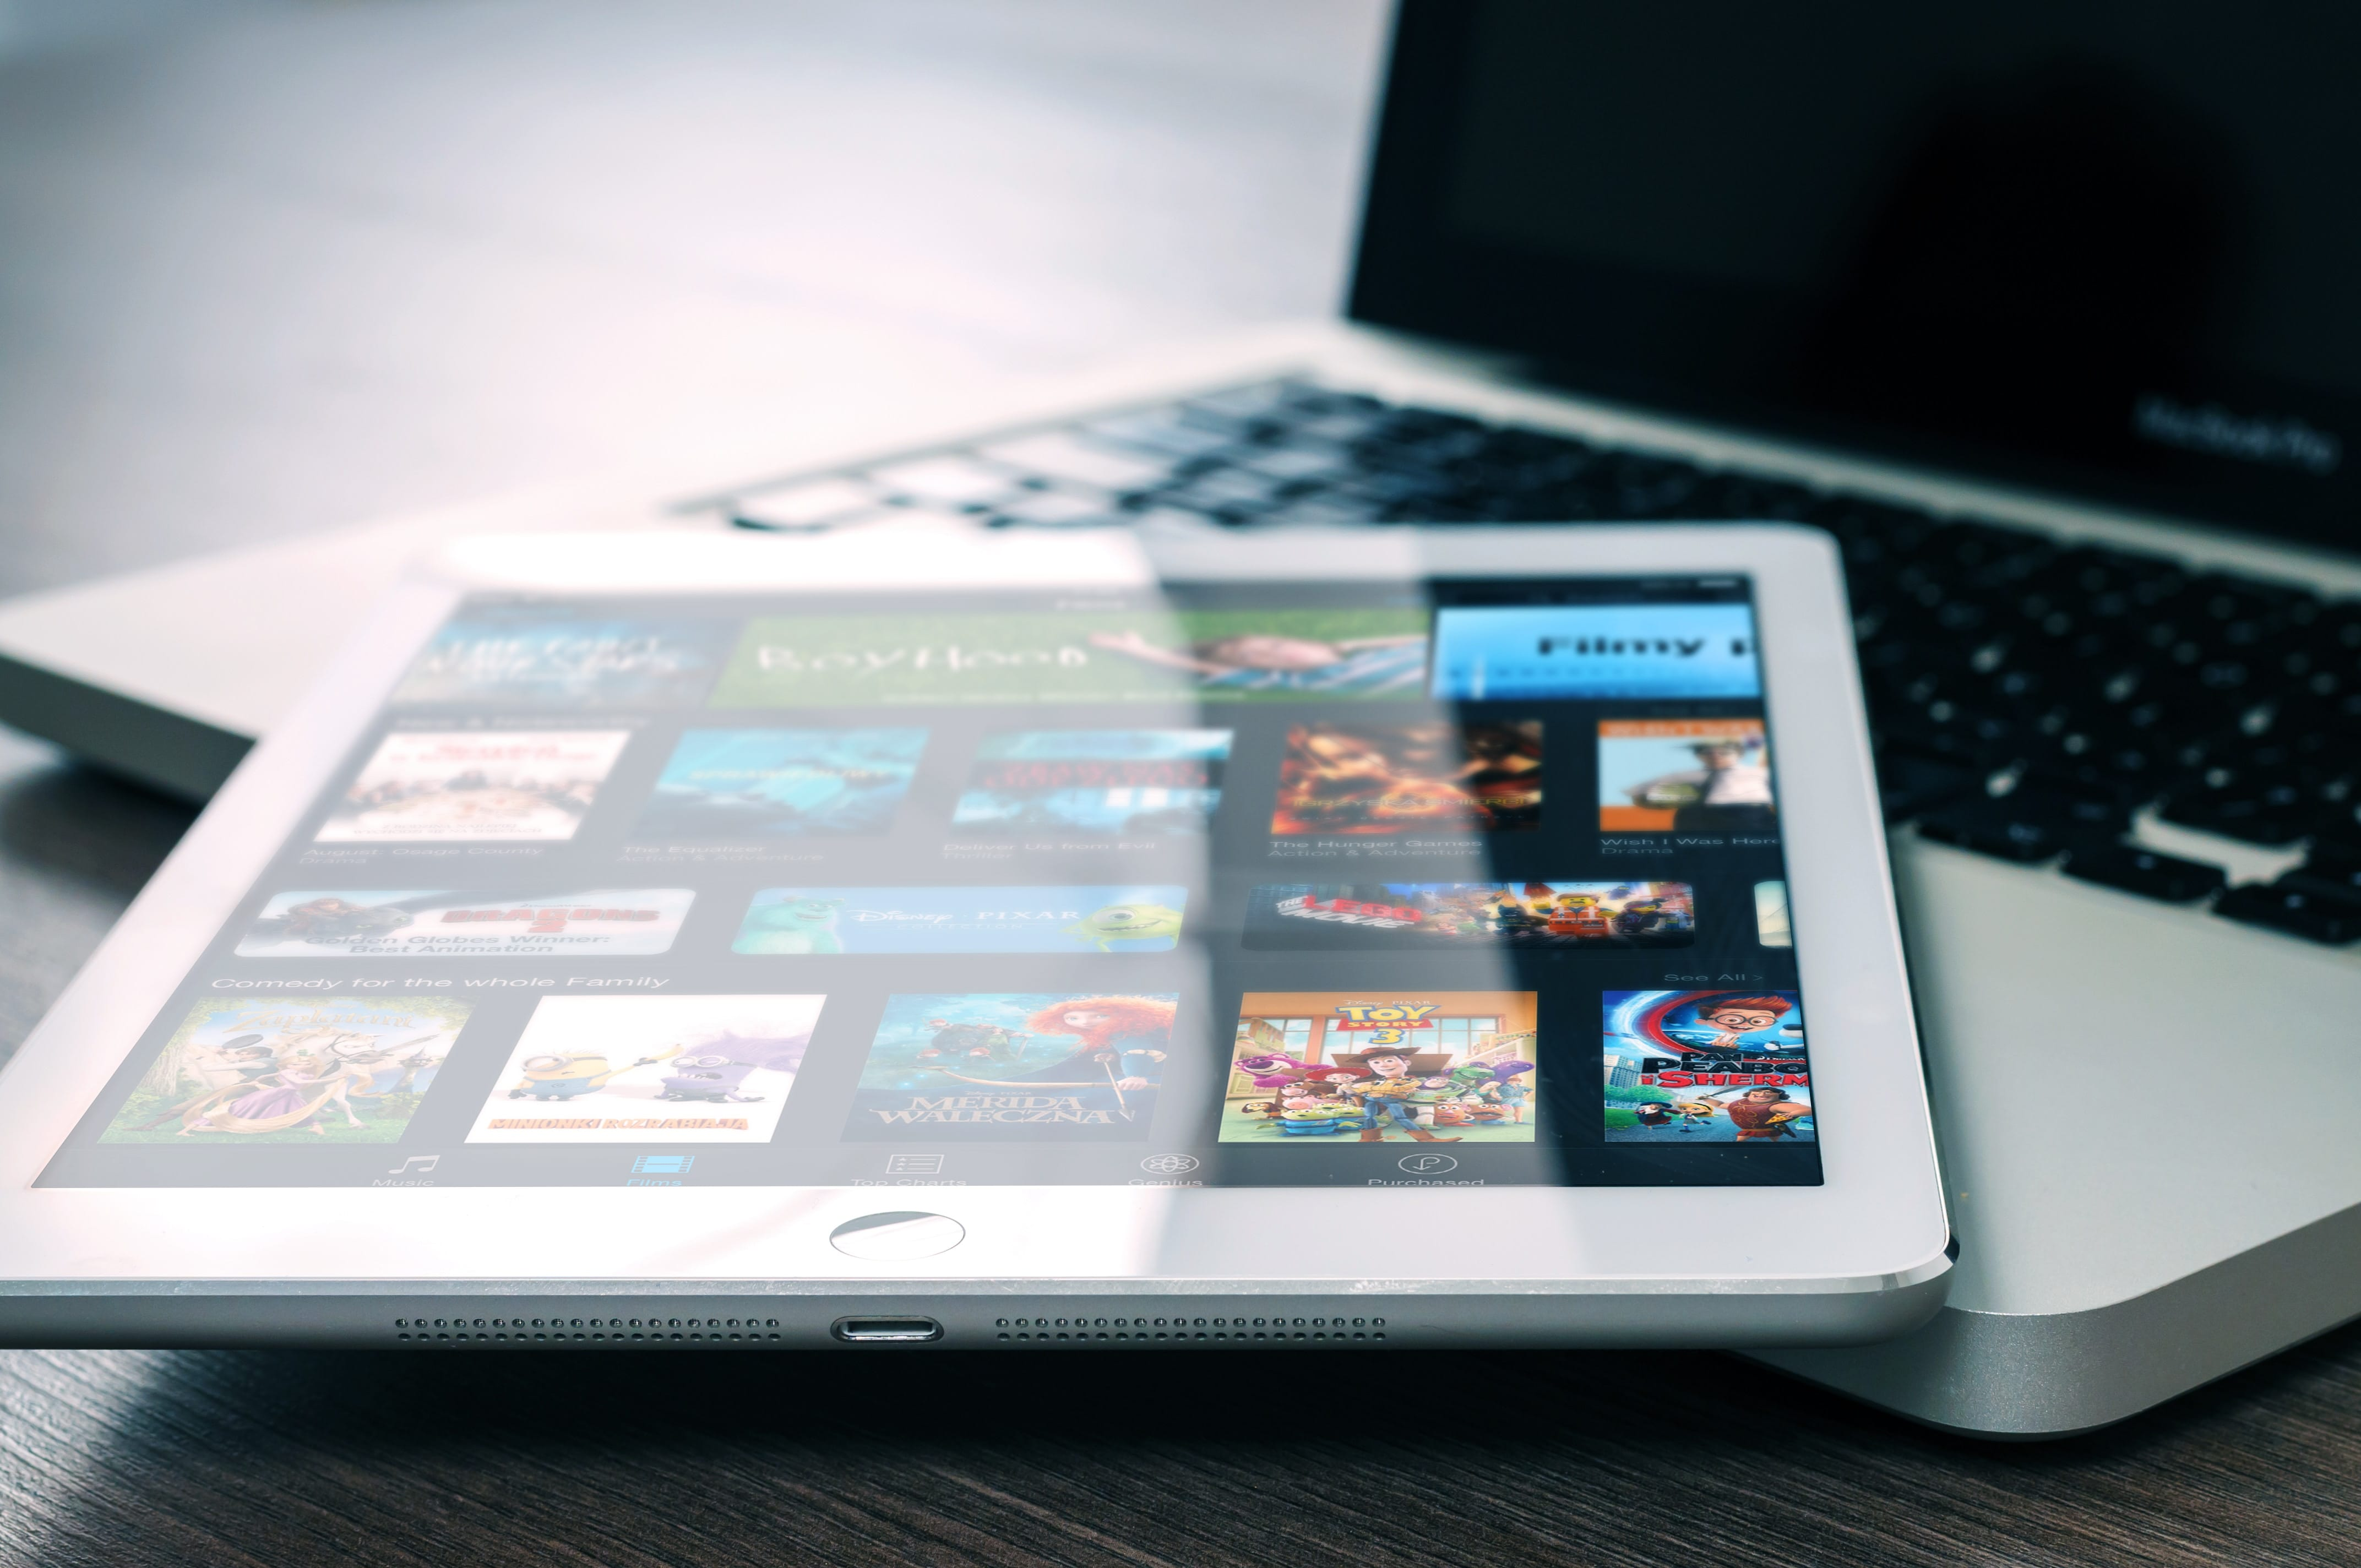 Tablet computer on top of a laptop; image by William Iven, via unsplash.com.